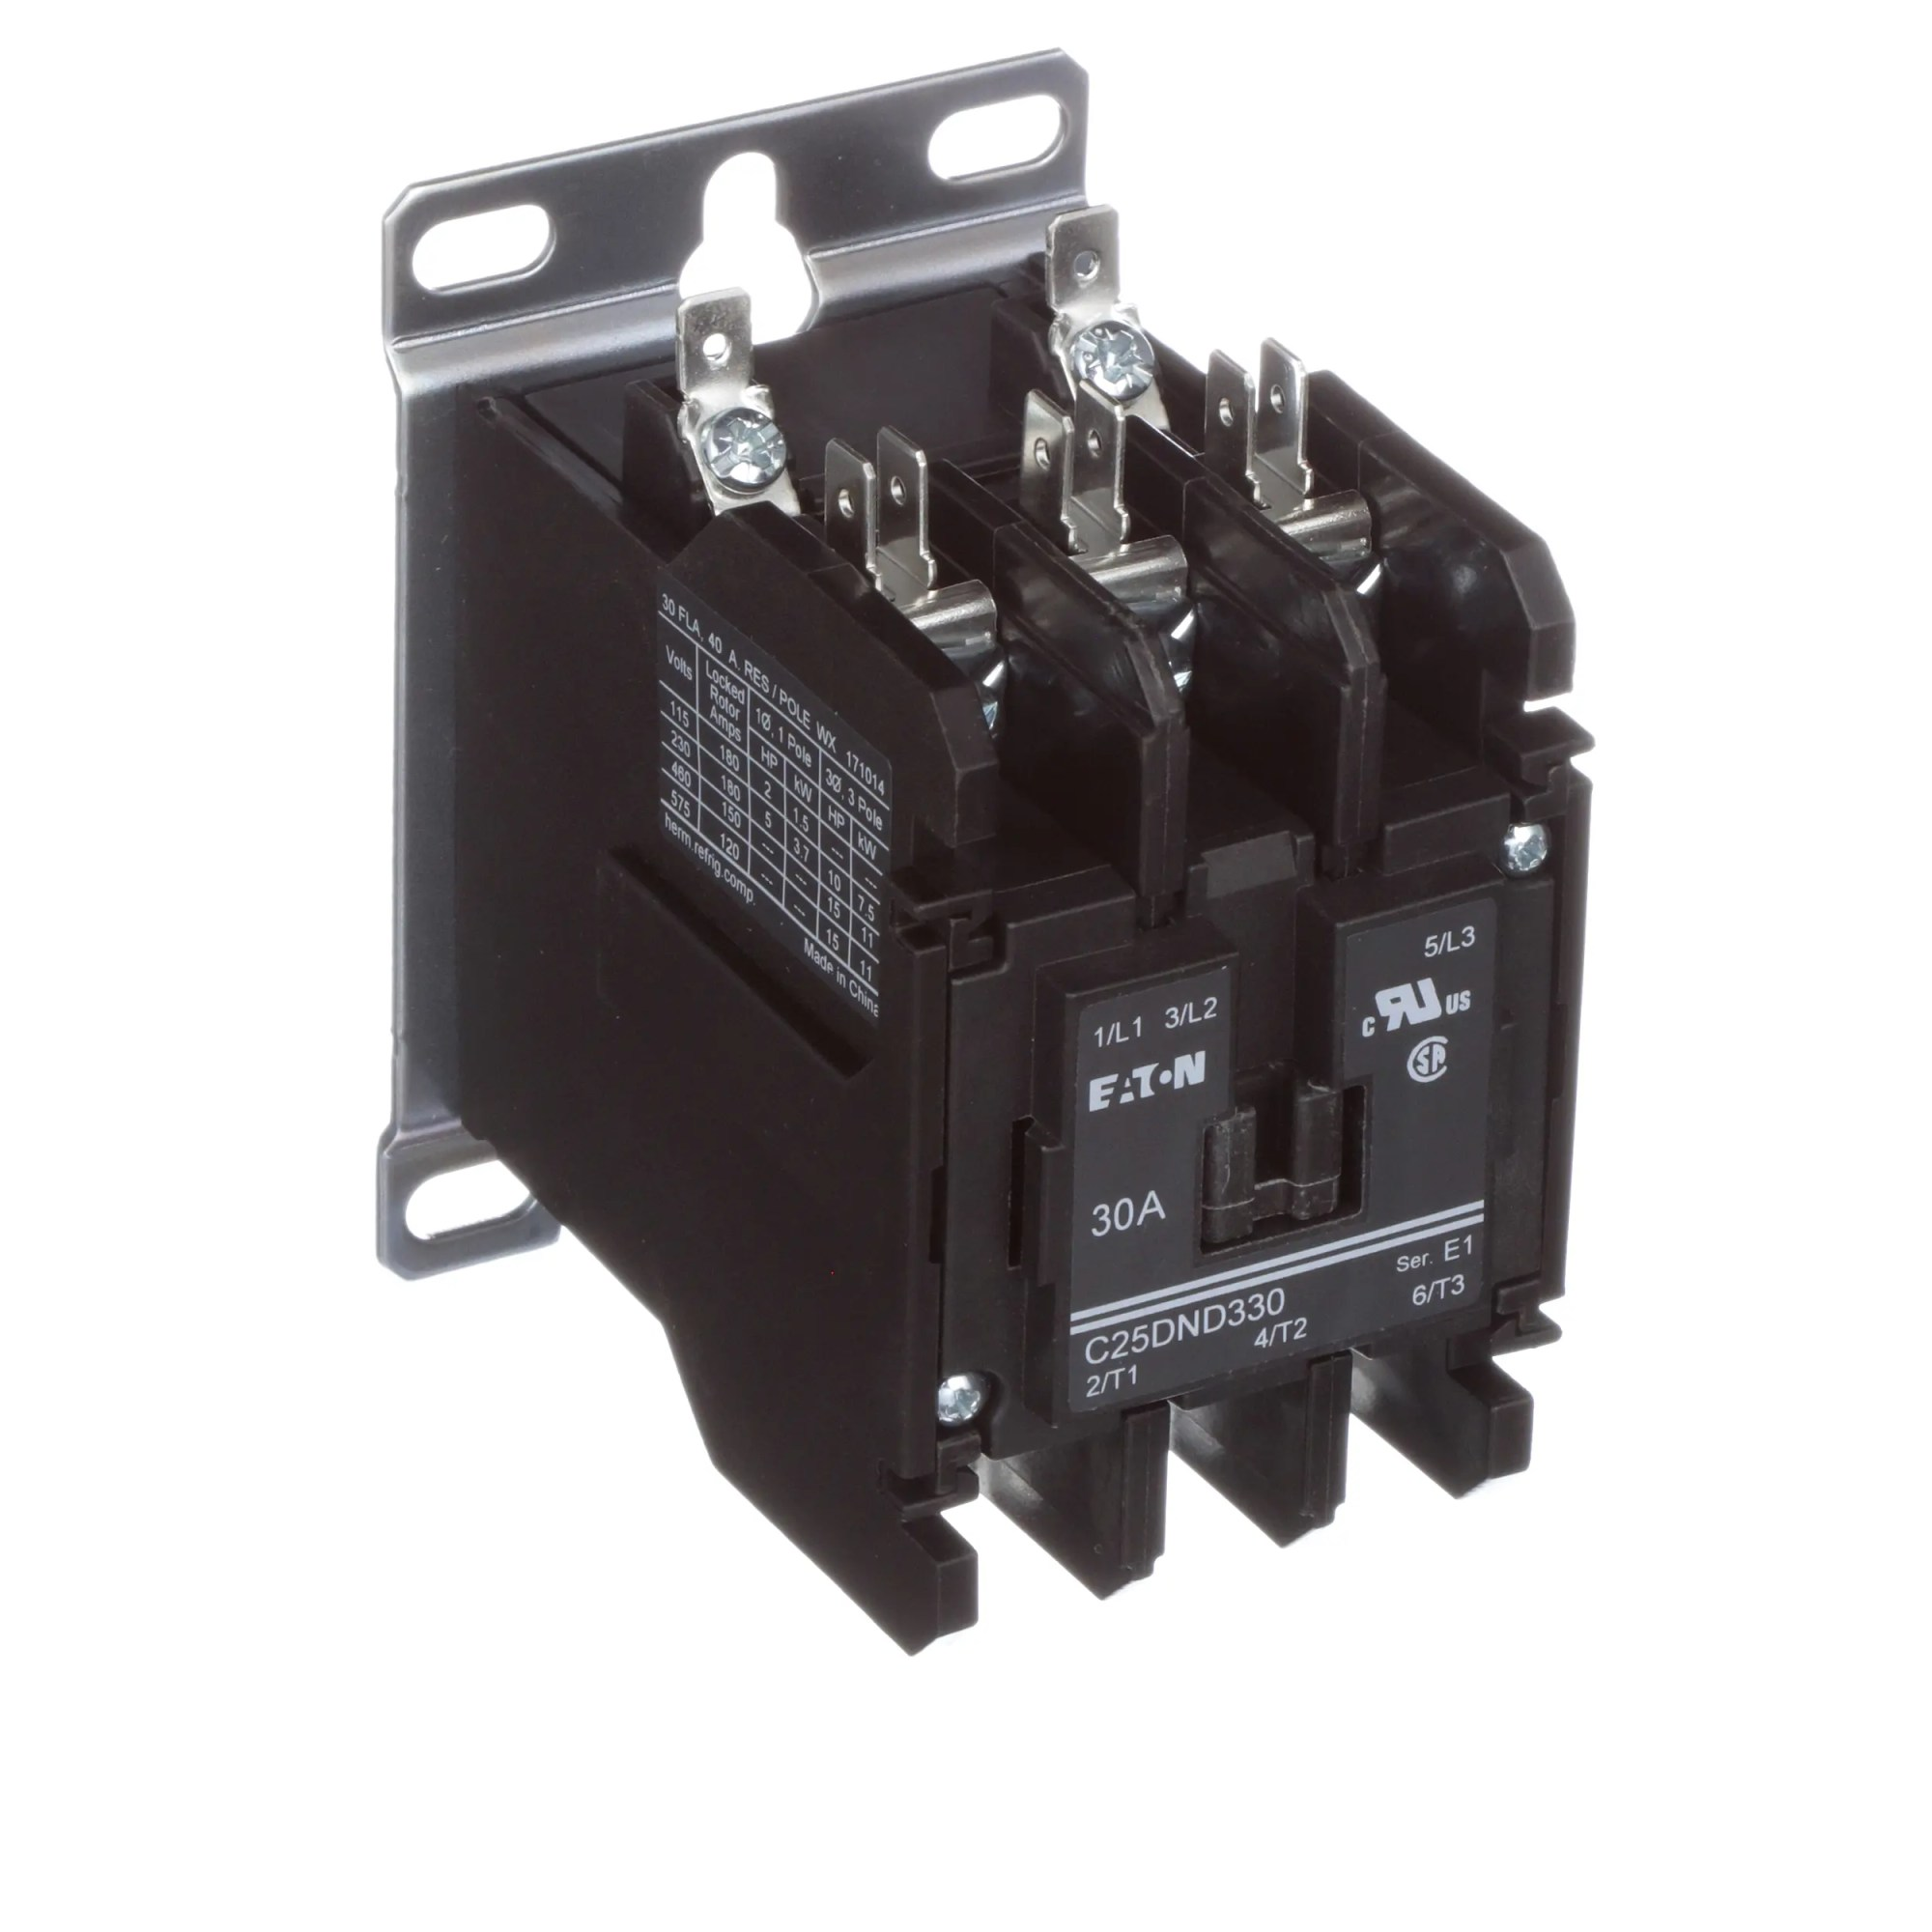 hight resolution of eaton cutler hammer c25dnd330a definite purpose control contactor 3 pole 30a 120vac coil allied electronics automation